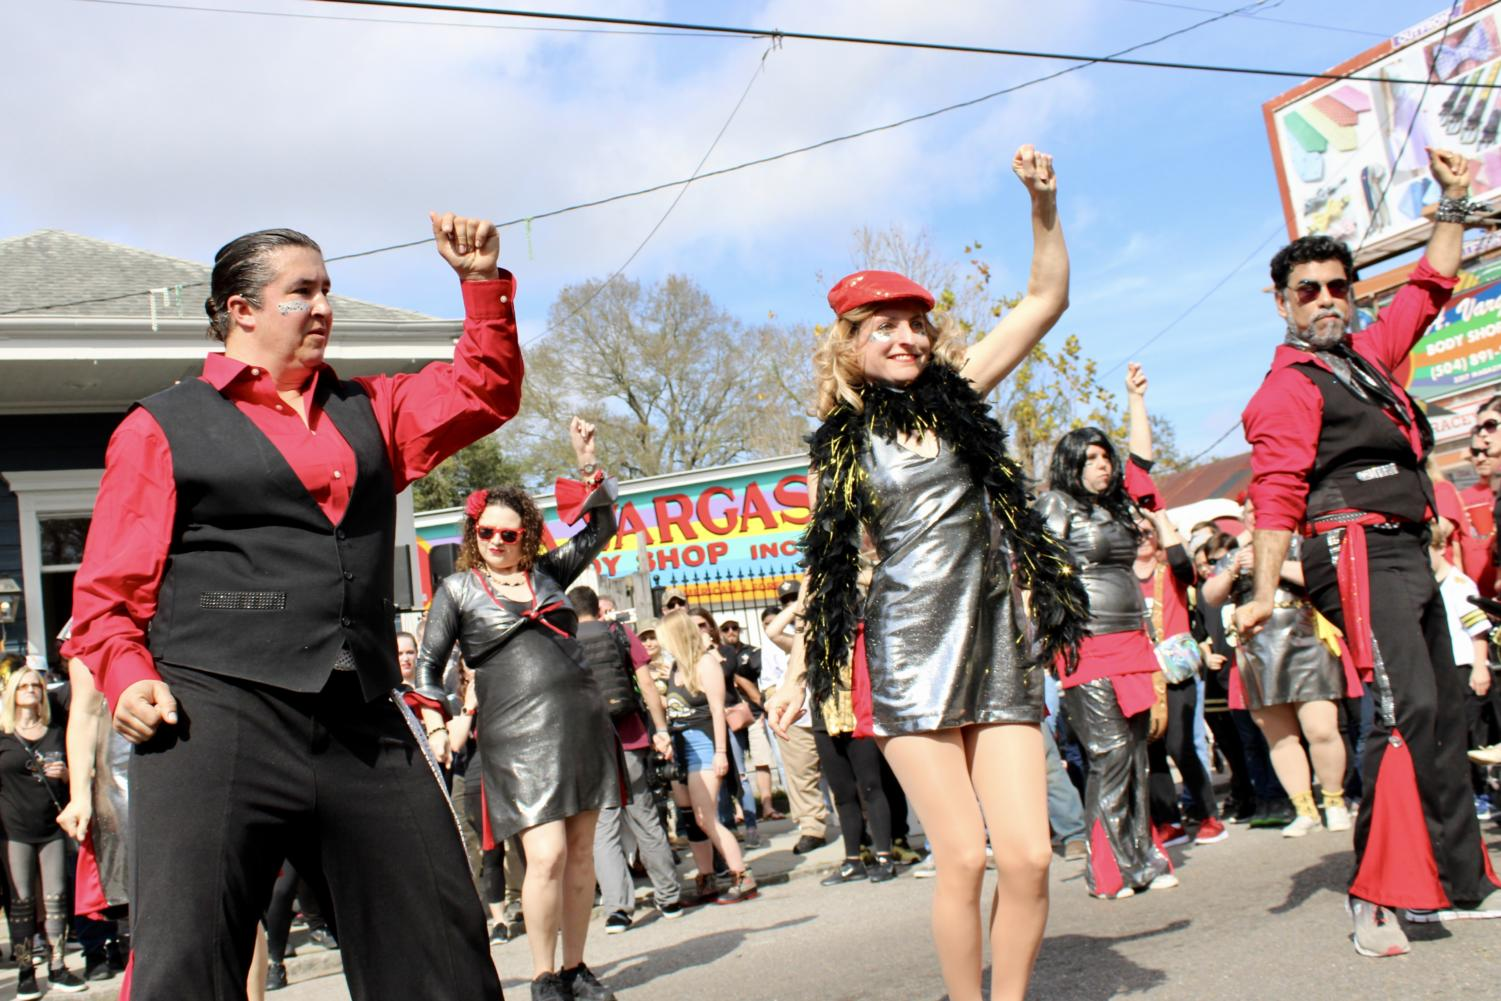 Dance+krewes+battled+each+other+in+a+dance-off+at+the+Magazine+Street+block+party.+Photo+credit%3A+Madison+Mcloughlin